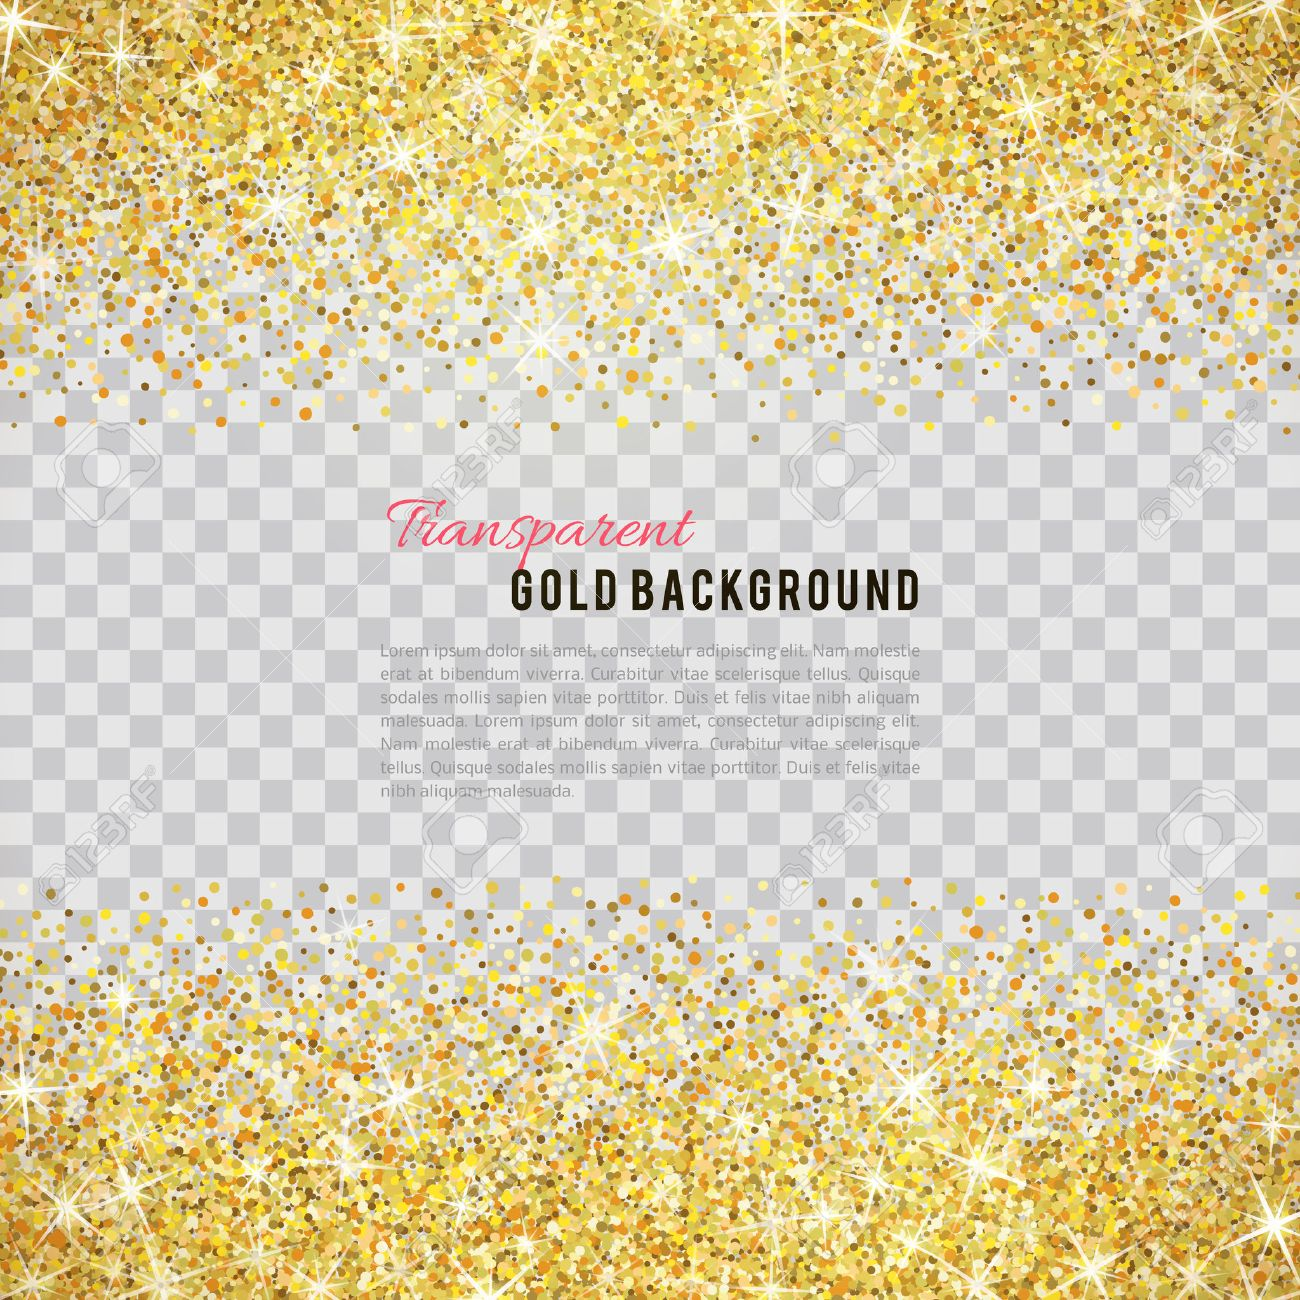 Gold glitter texture isolated on transparent background. - 53983328